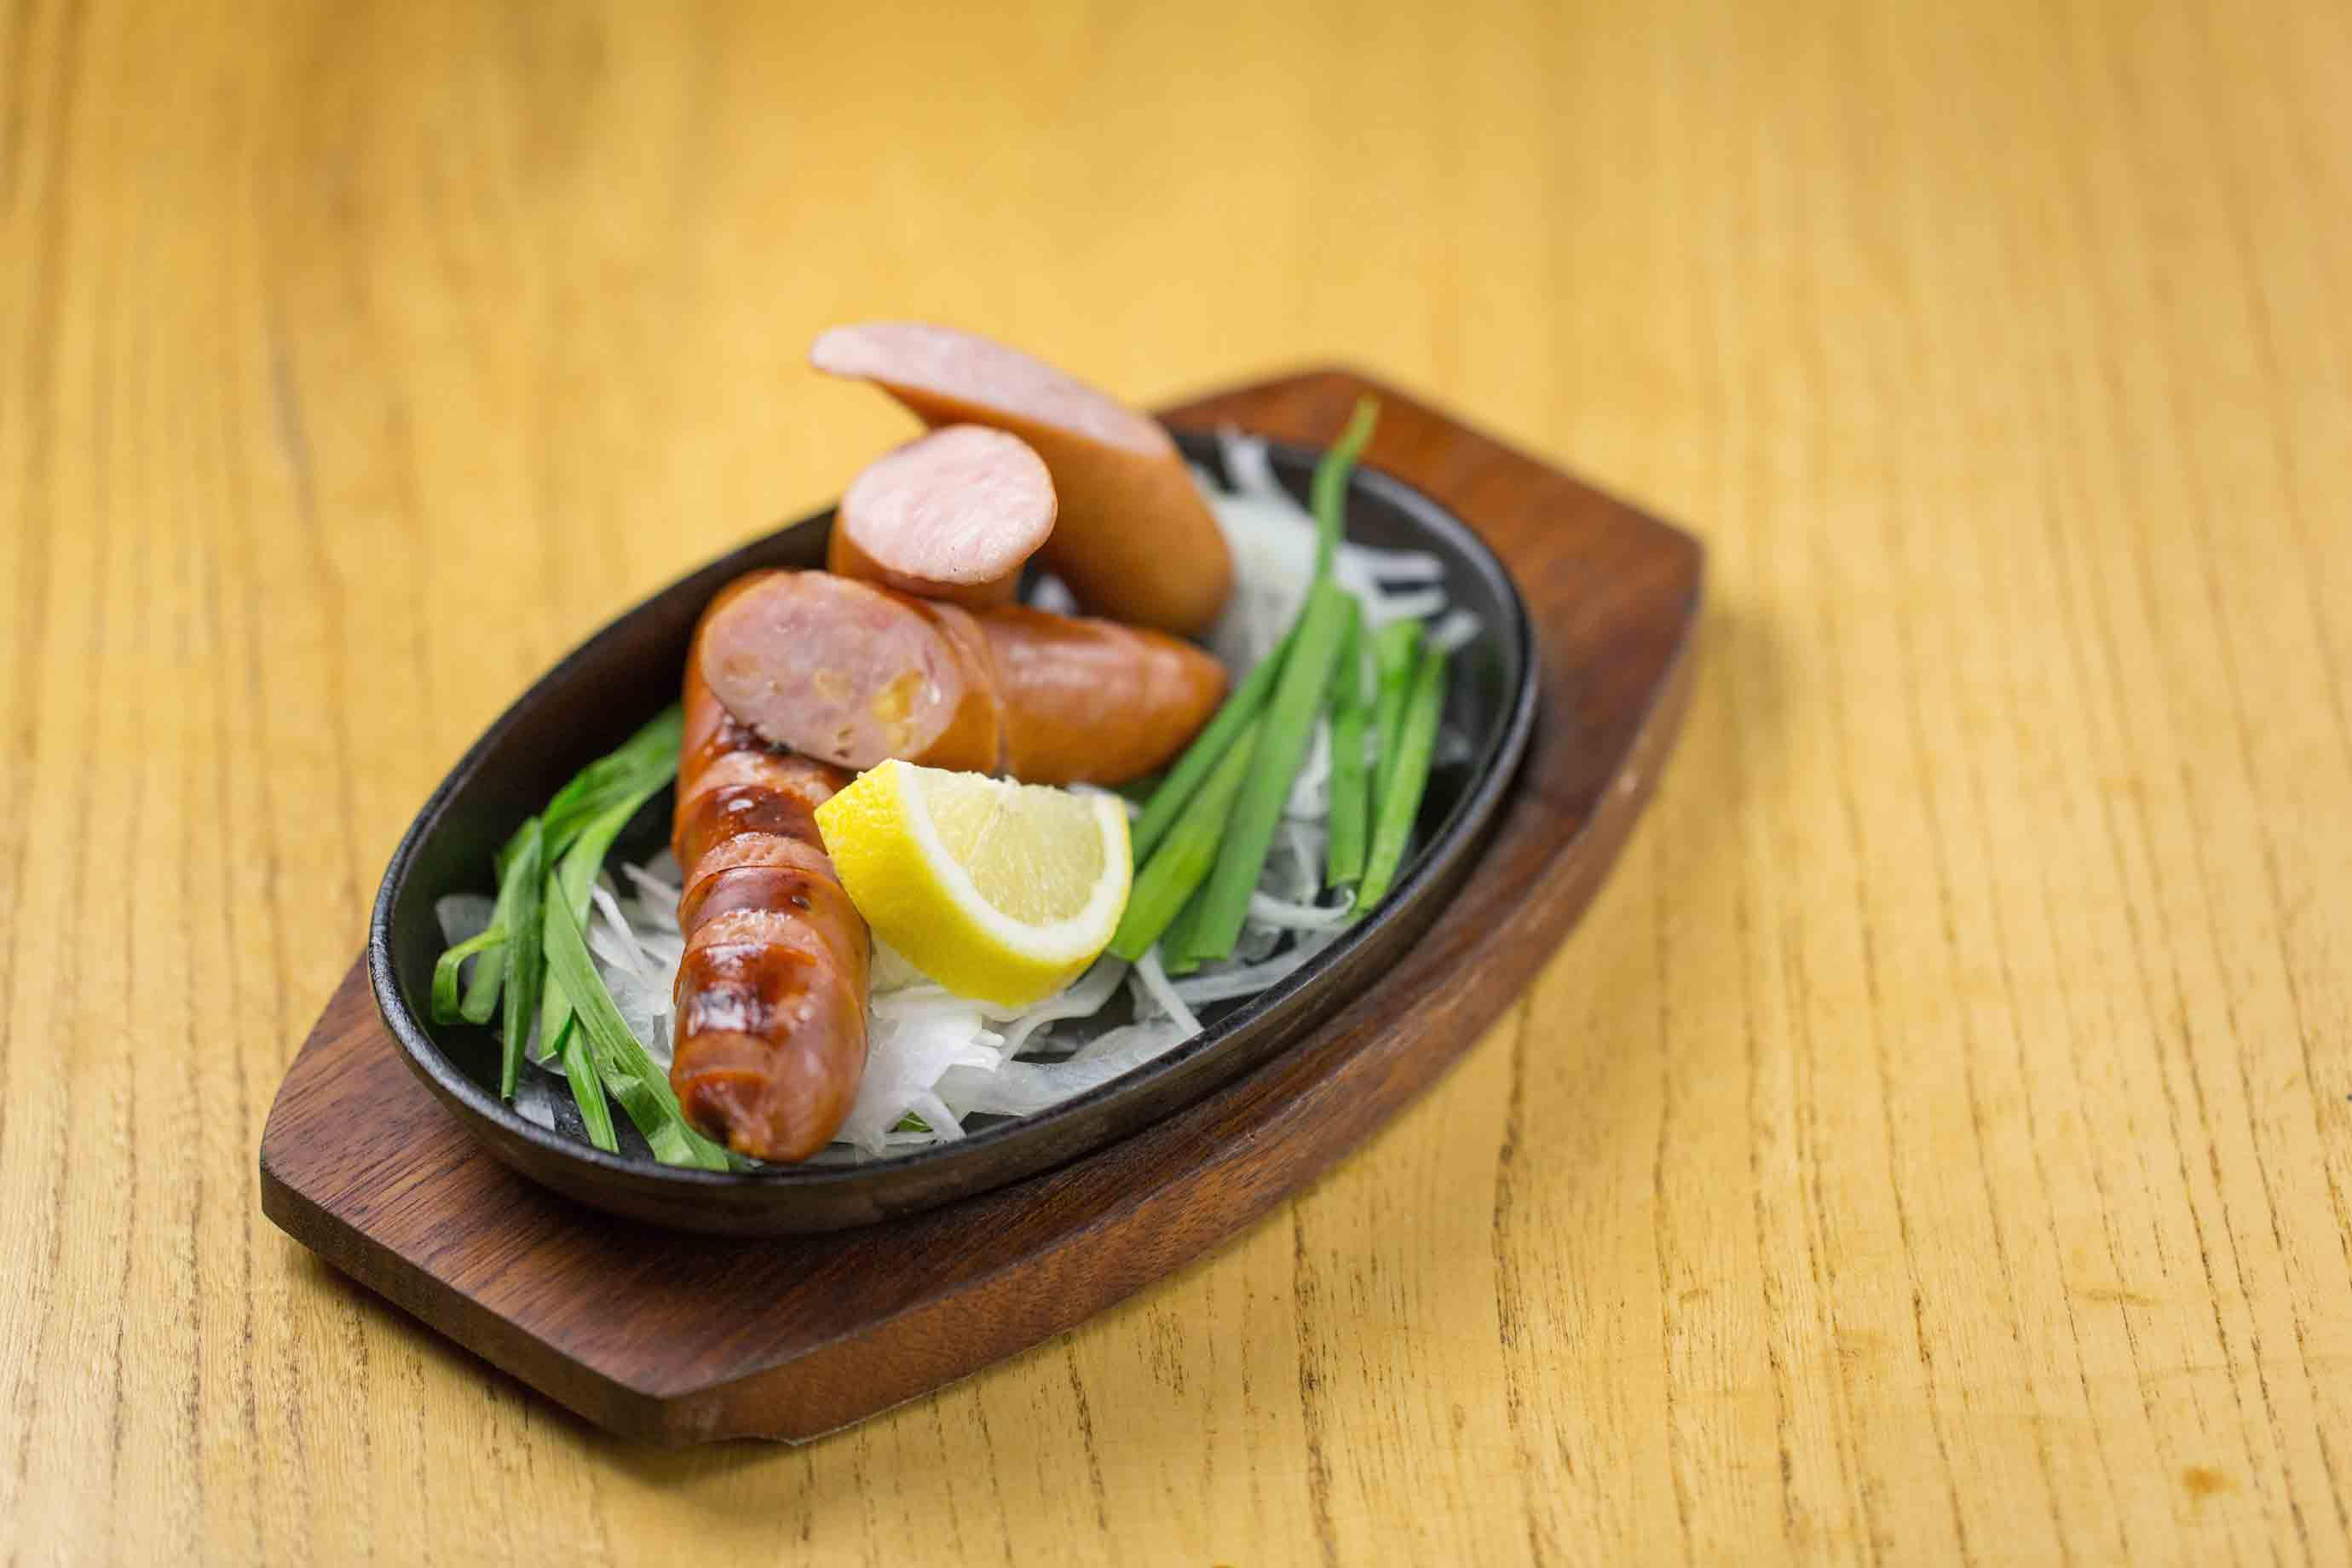 A plate of andouille sausage